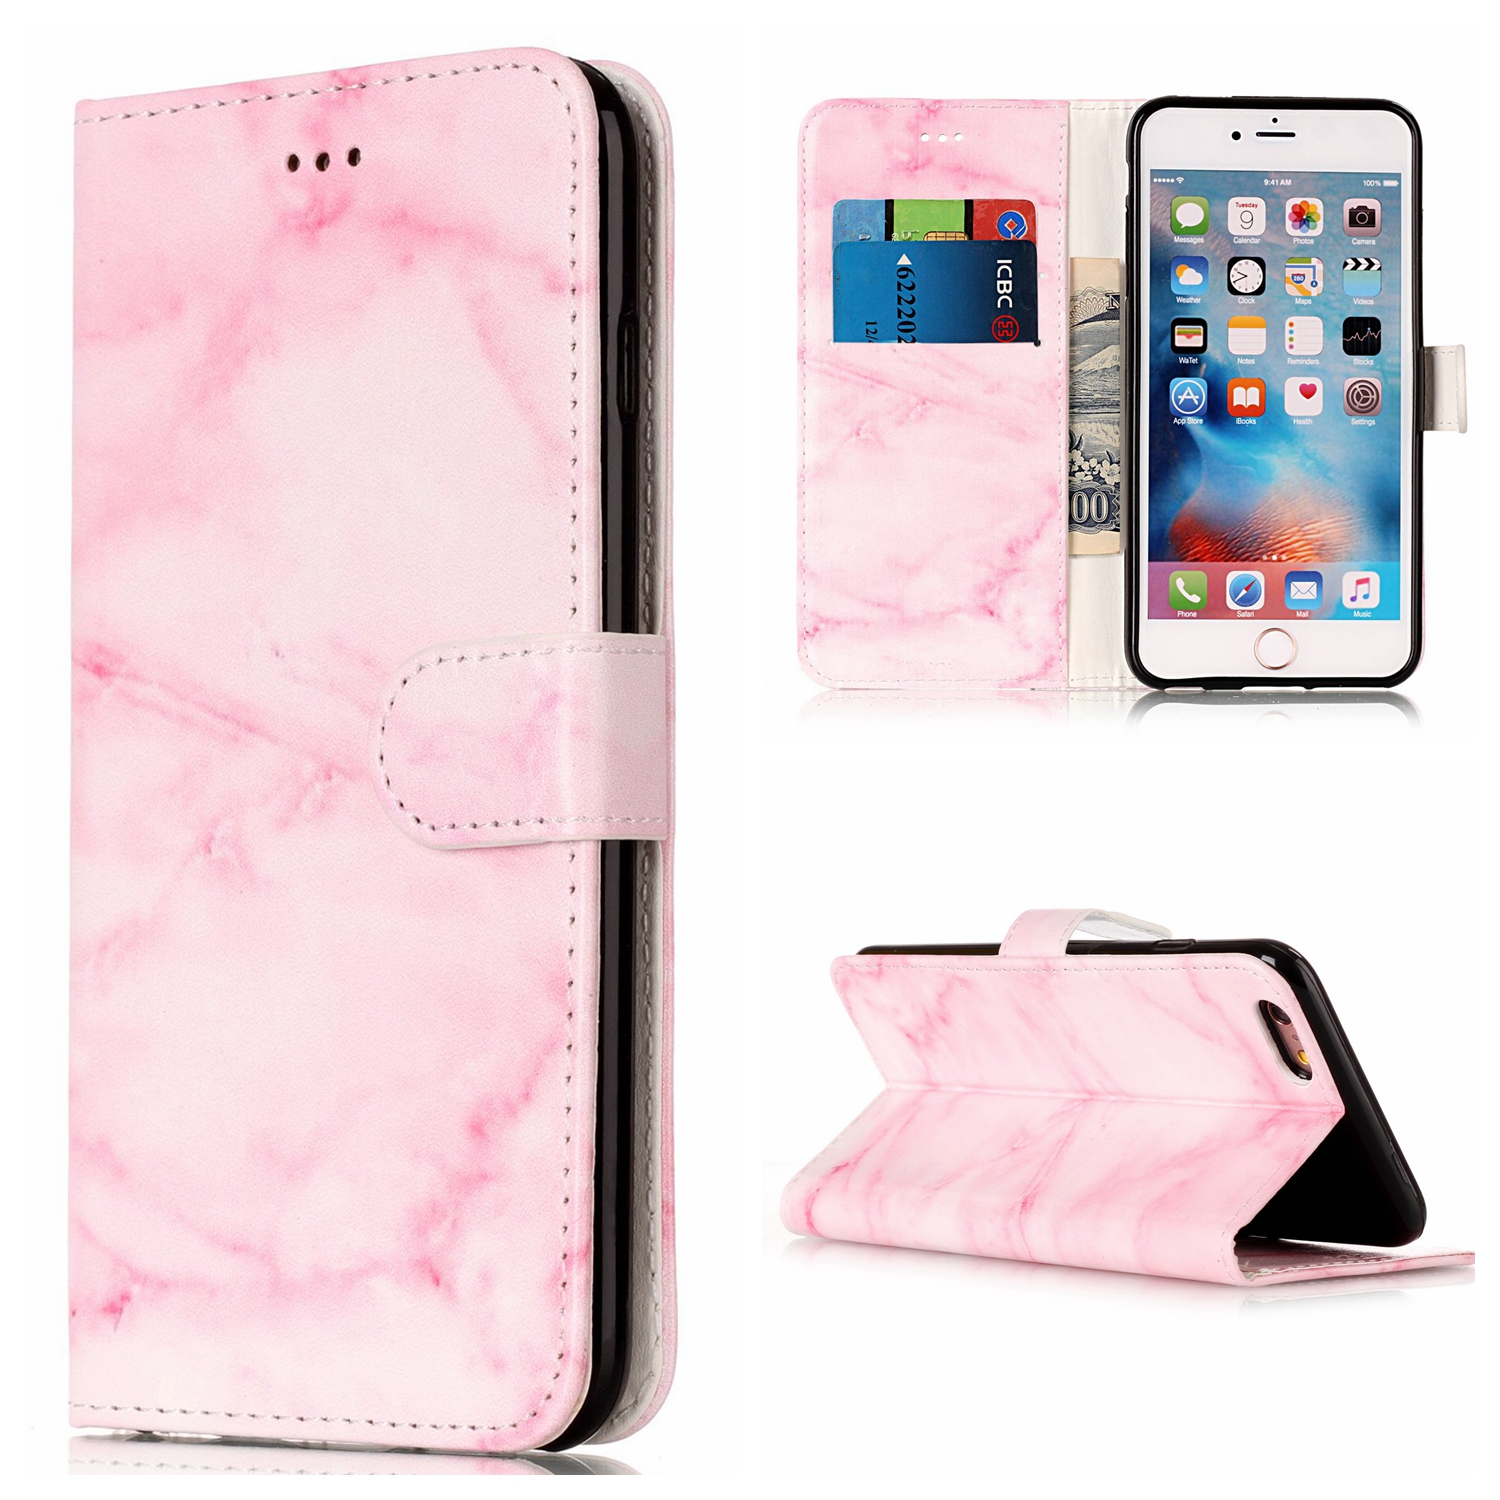 Case for Apple iphone 6 6S Plus PU+TPU Case for iphone 6 6 S Plus A1690 A1699 A1687 A1634 A1593 Marble pattern Flip phone bag